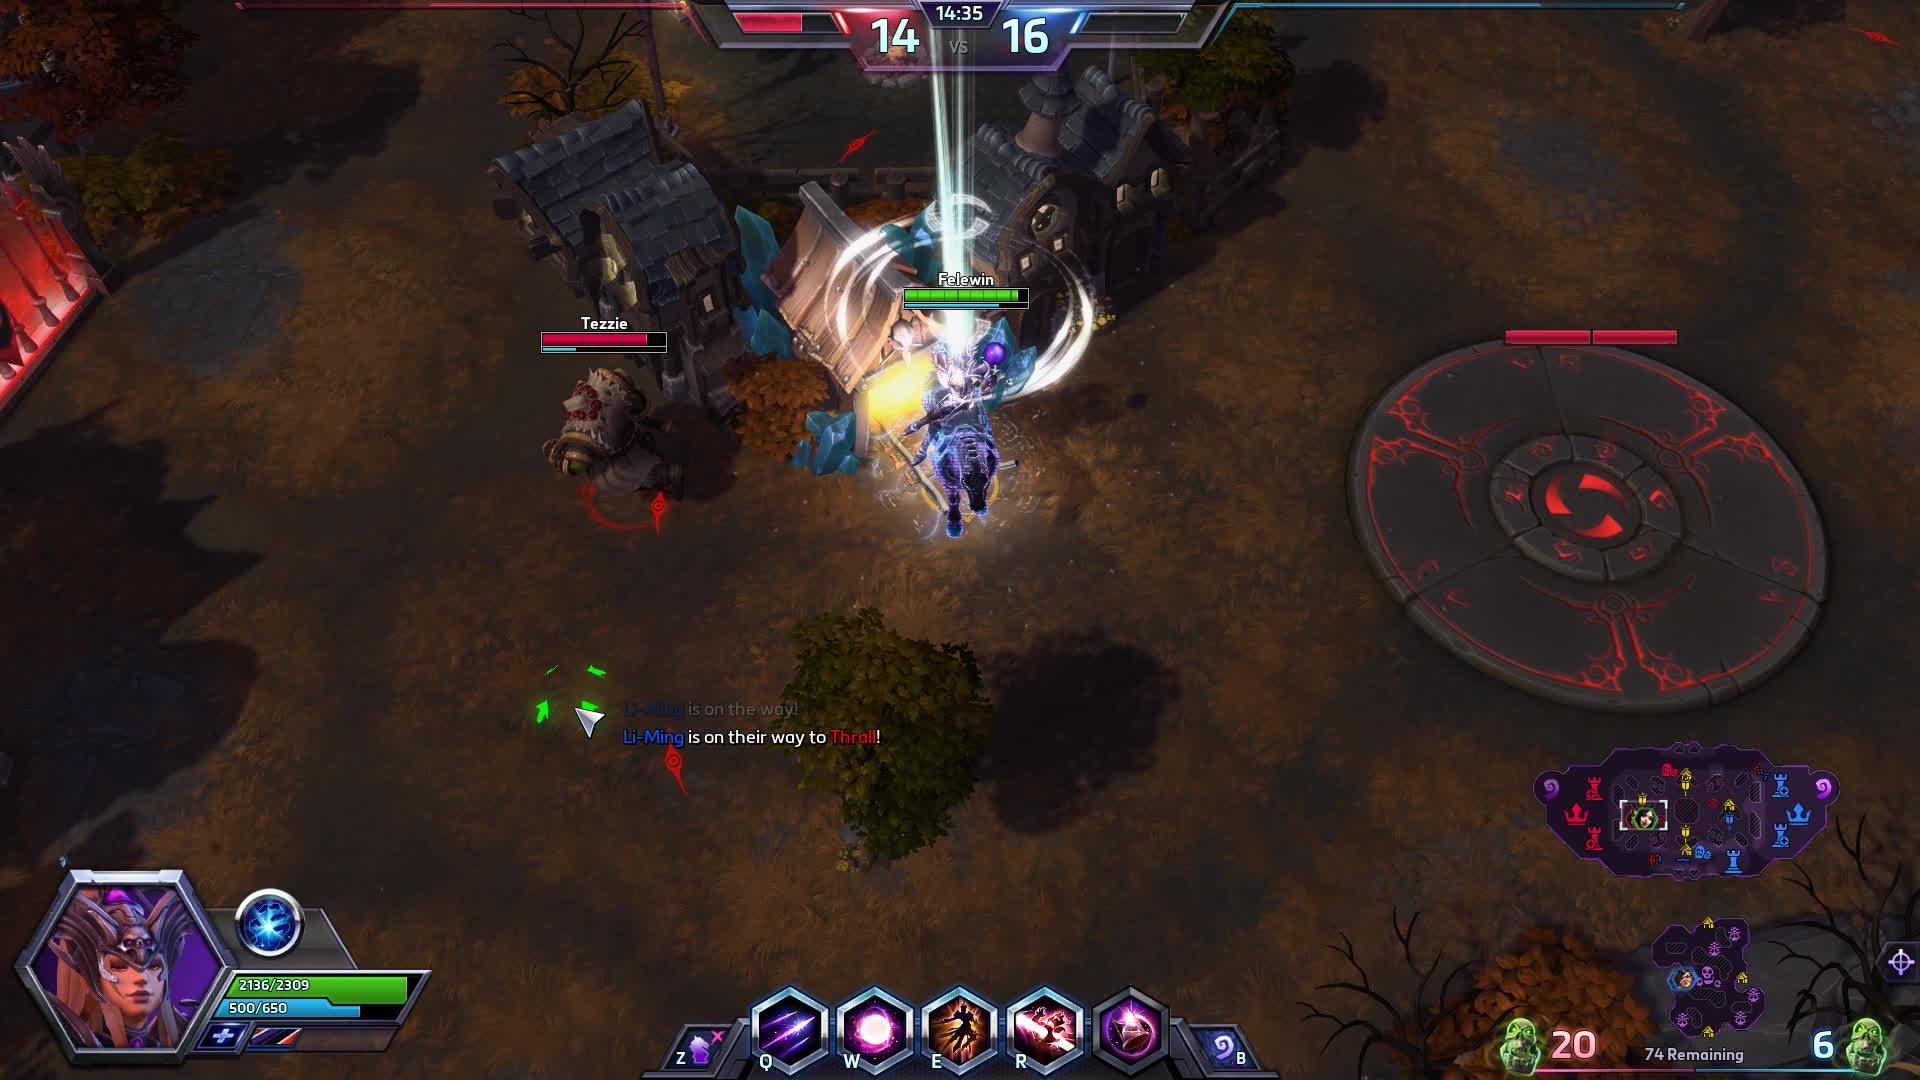 Thrall Deleted On The Run